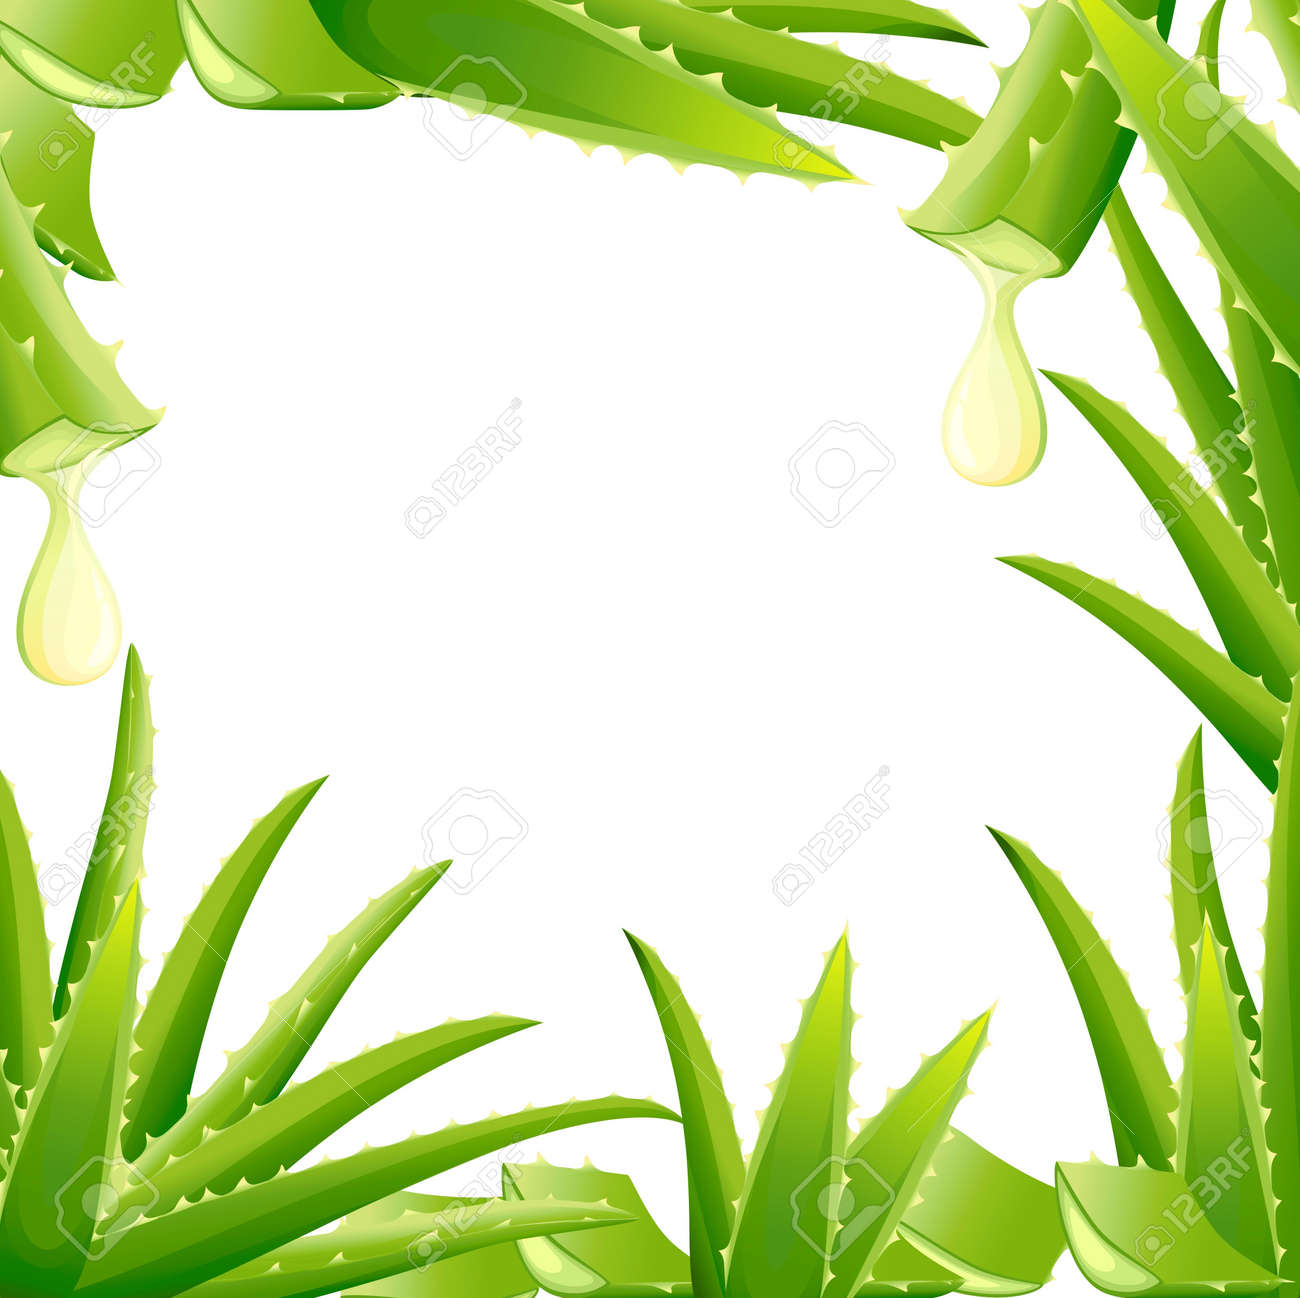 pattern of green aloe vera plant cut pieces of aloe vera serum